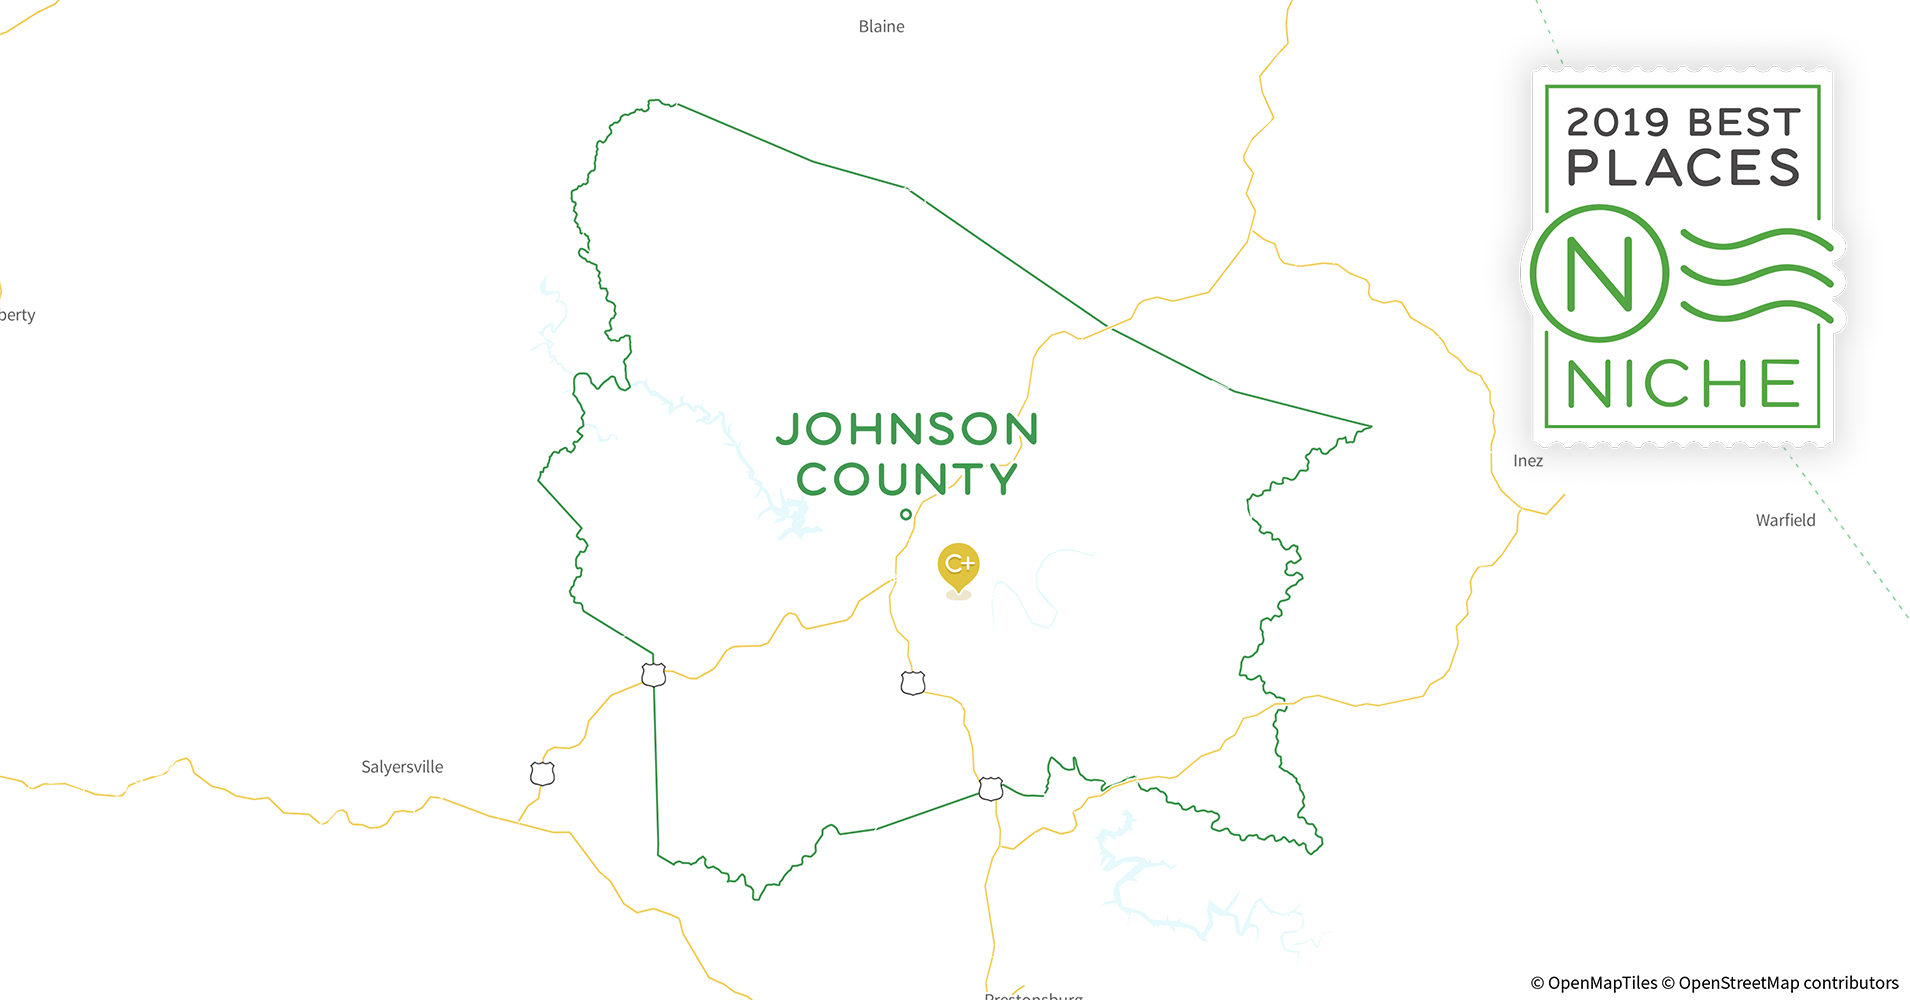 2019 Best Places to Live in Johnson County, KY - Niche Inez Ky Map on irvine ky map, harlan county kentucky map, campbellsville kentucky map, city map, kuttawa ky map, independence ky map, martin co kentucky map, kermit wv map, louisa ky street view map, wheelwright ky on kentucky map, irvington ky map, jamestown ky map, liberty ky map, ky county map,